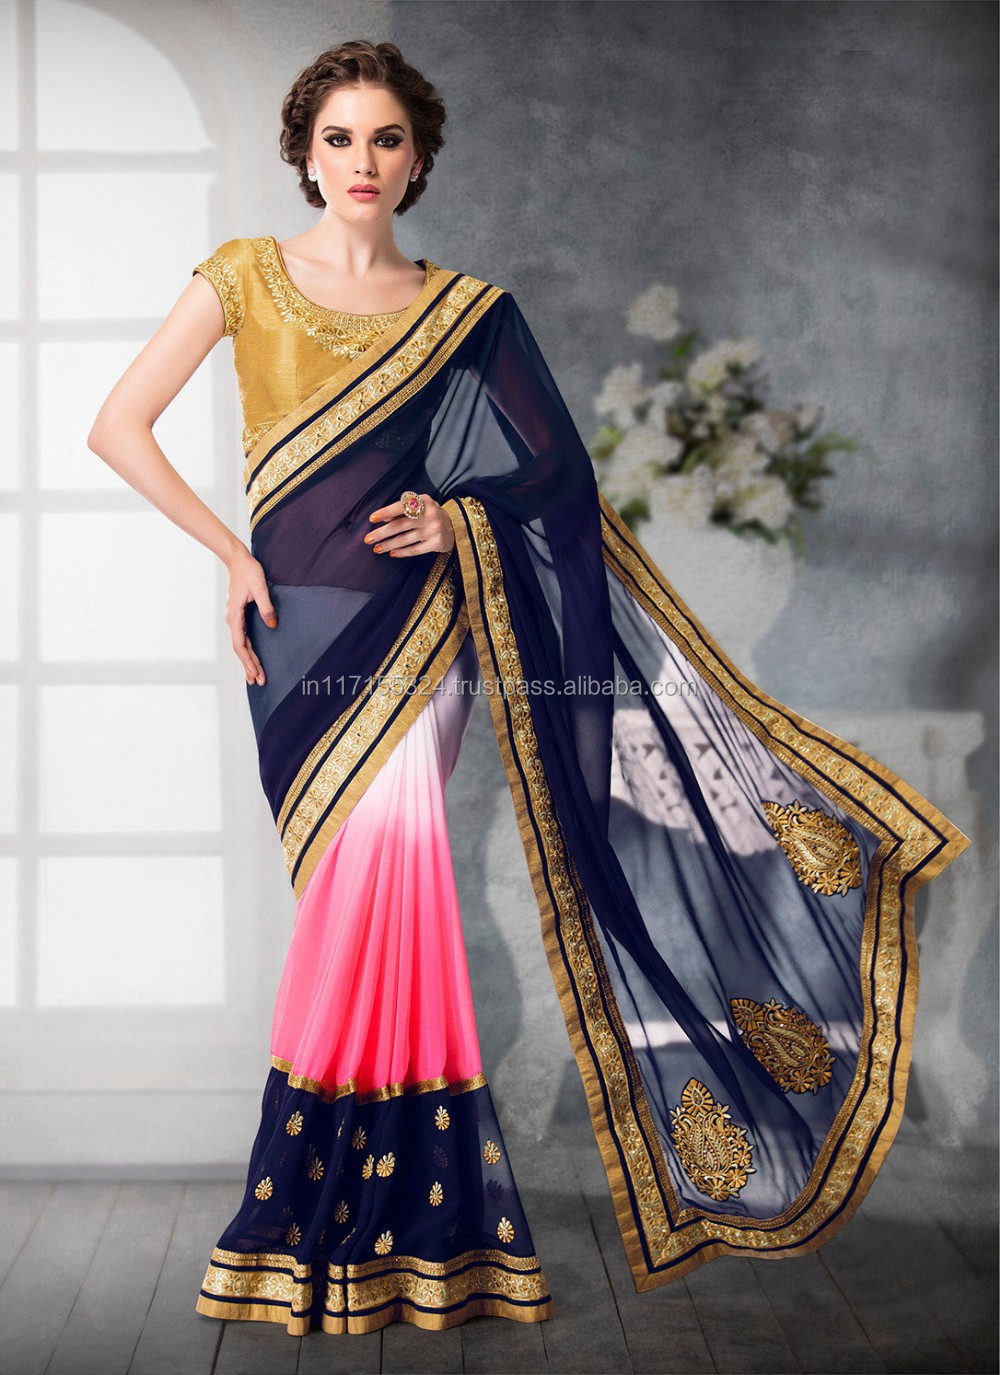 702b890c83bd0 Designer latest indian fancy sarees collection - New style saree blouses -  Saree border lace - Saree design patterns Cwert